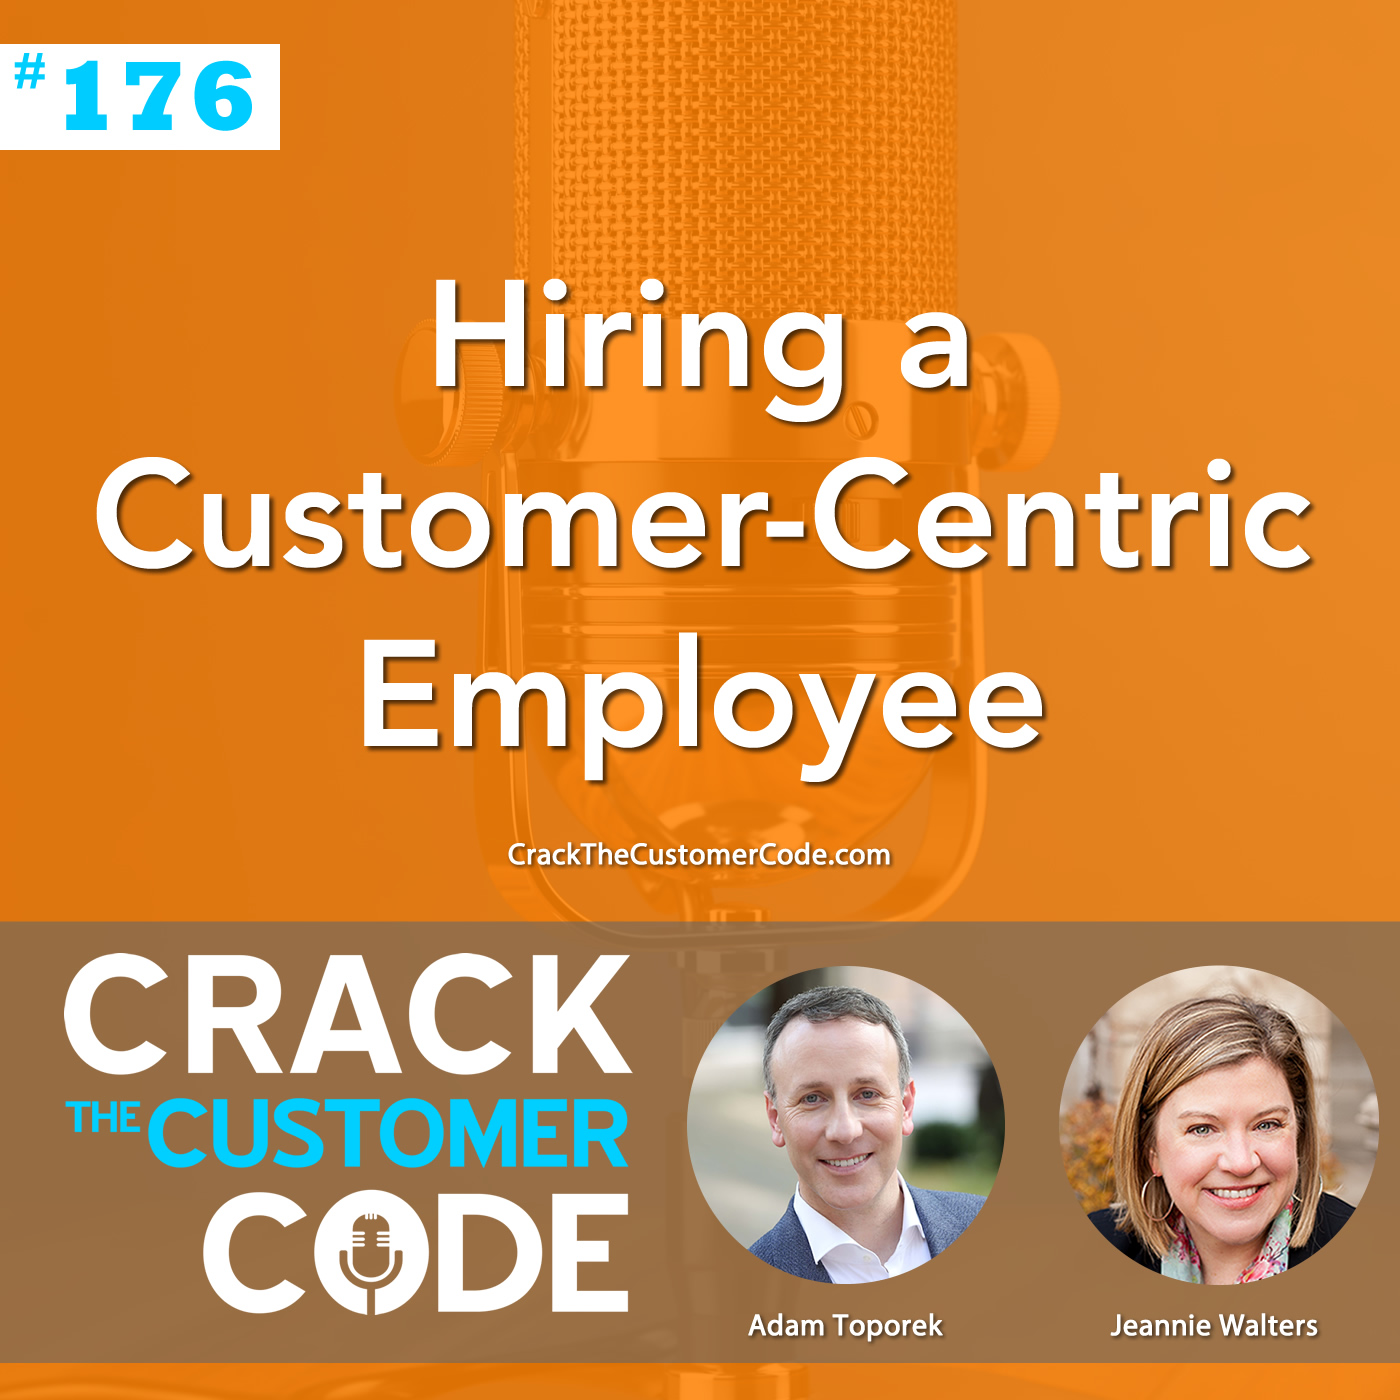 customer-centric employee